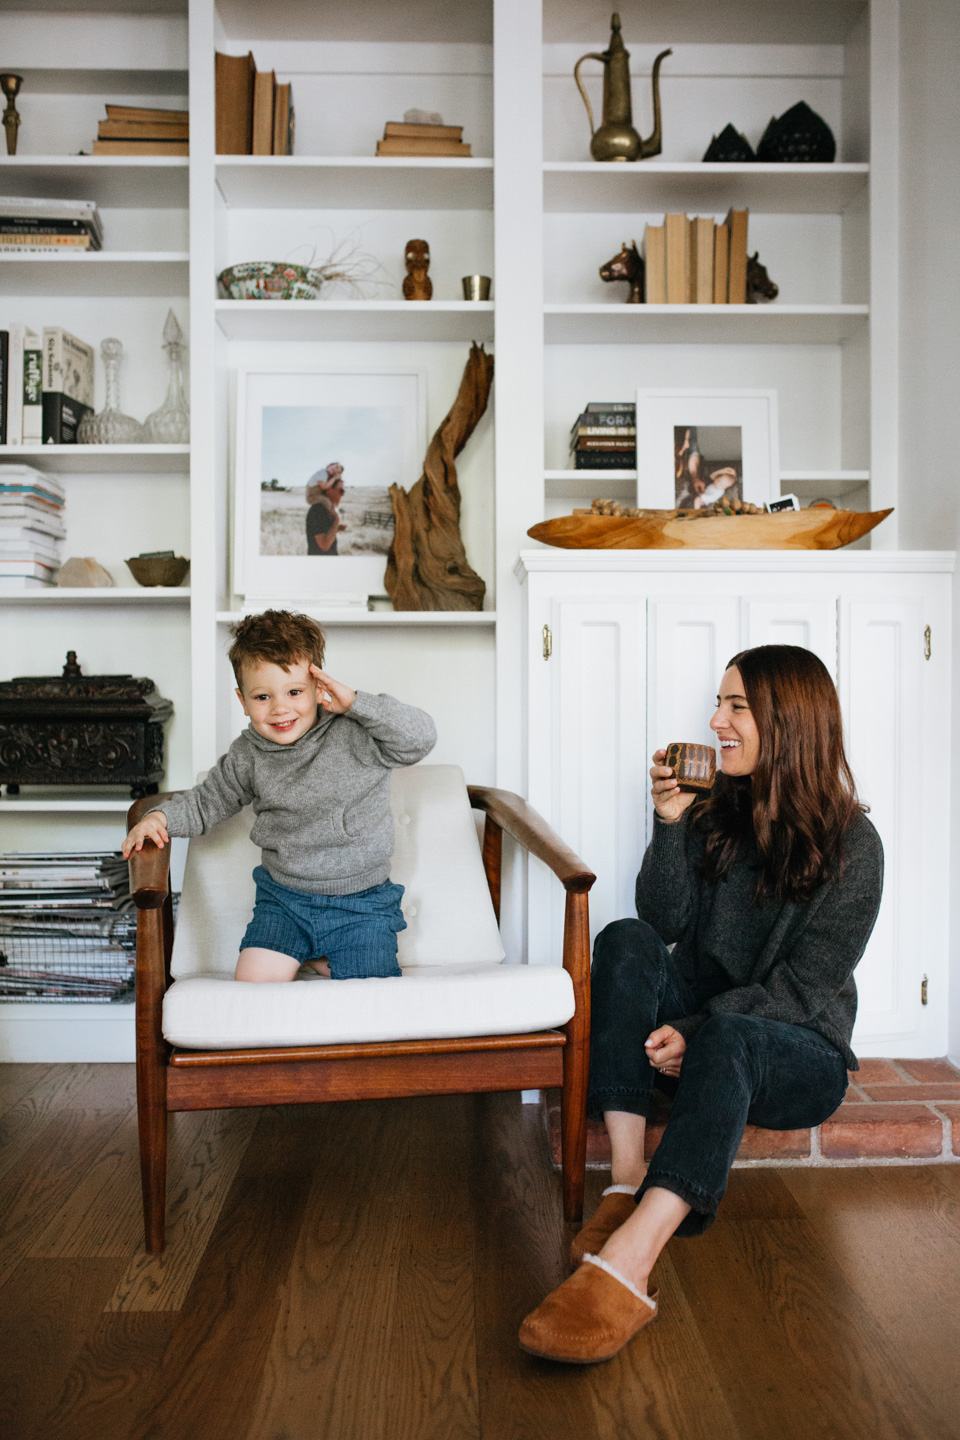 Jenni Kayne Holiday Gifts for the Entire Family